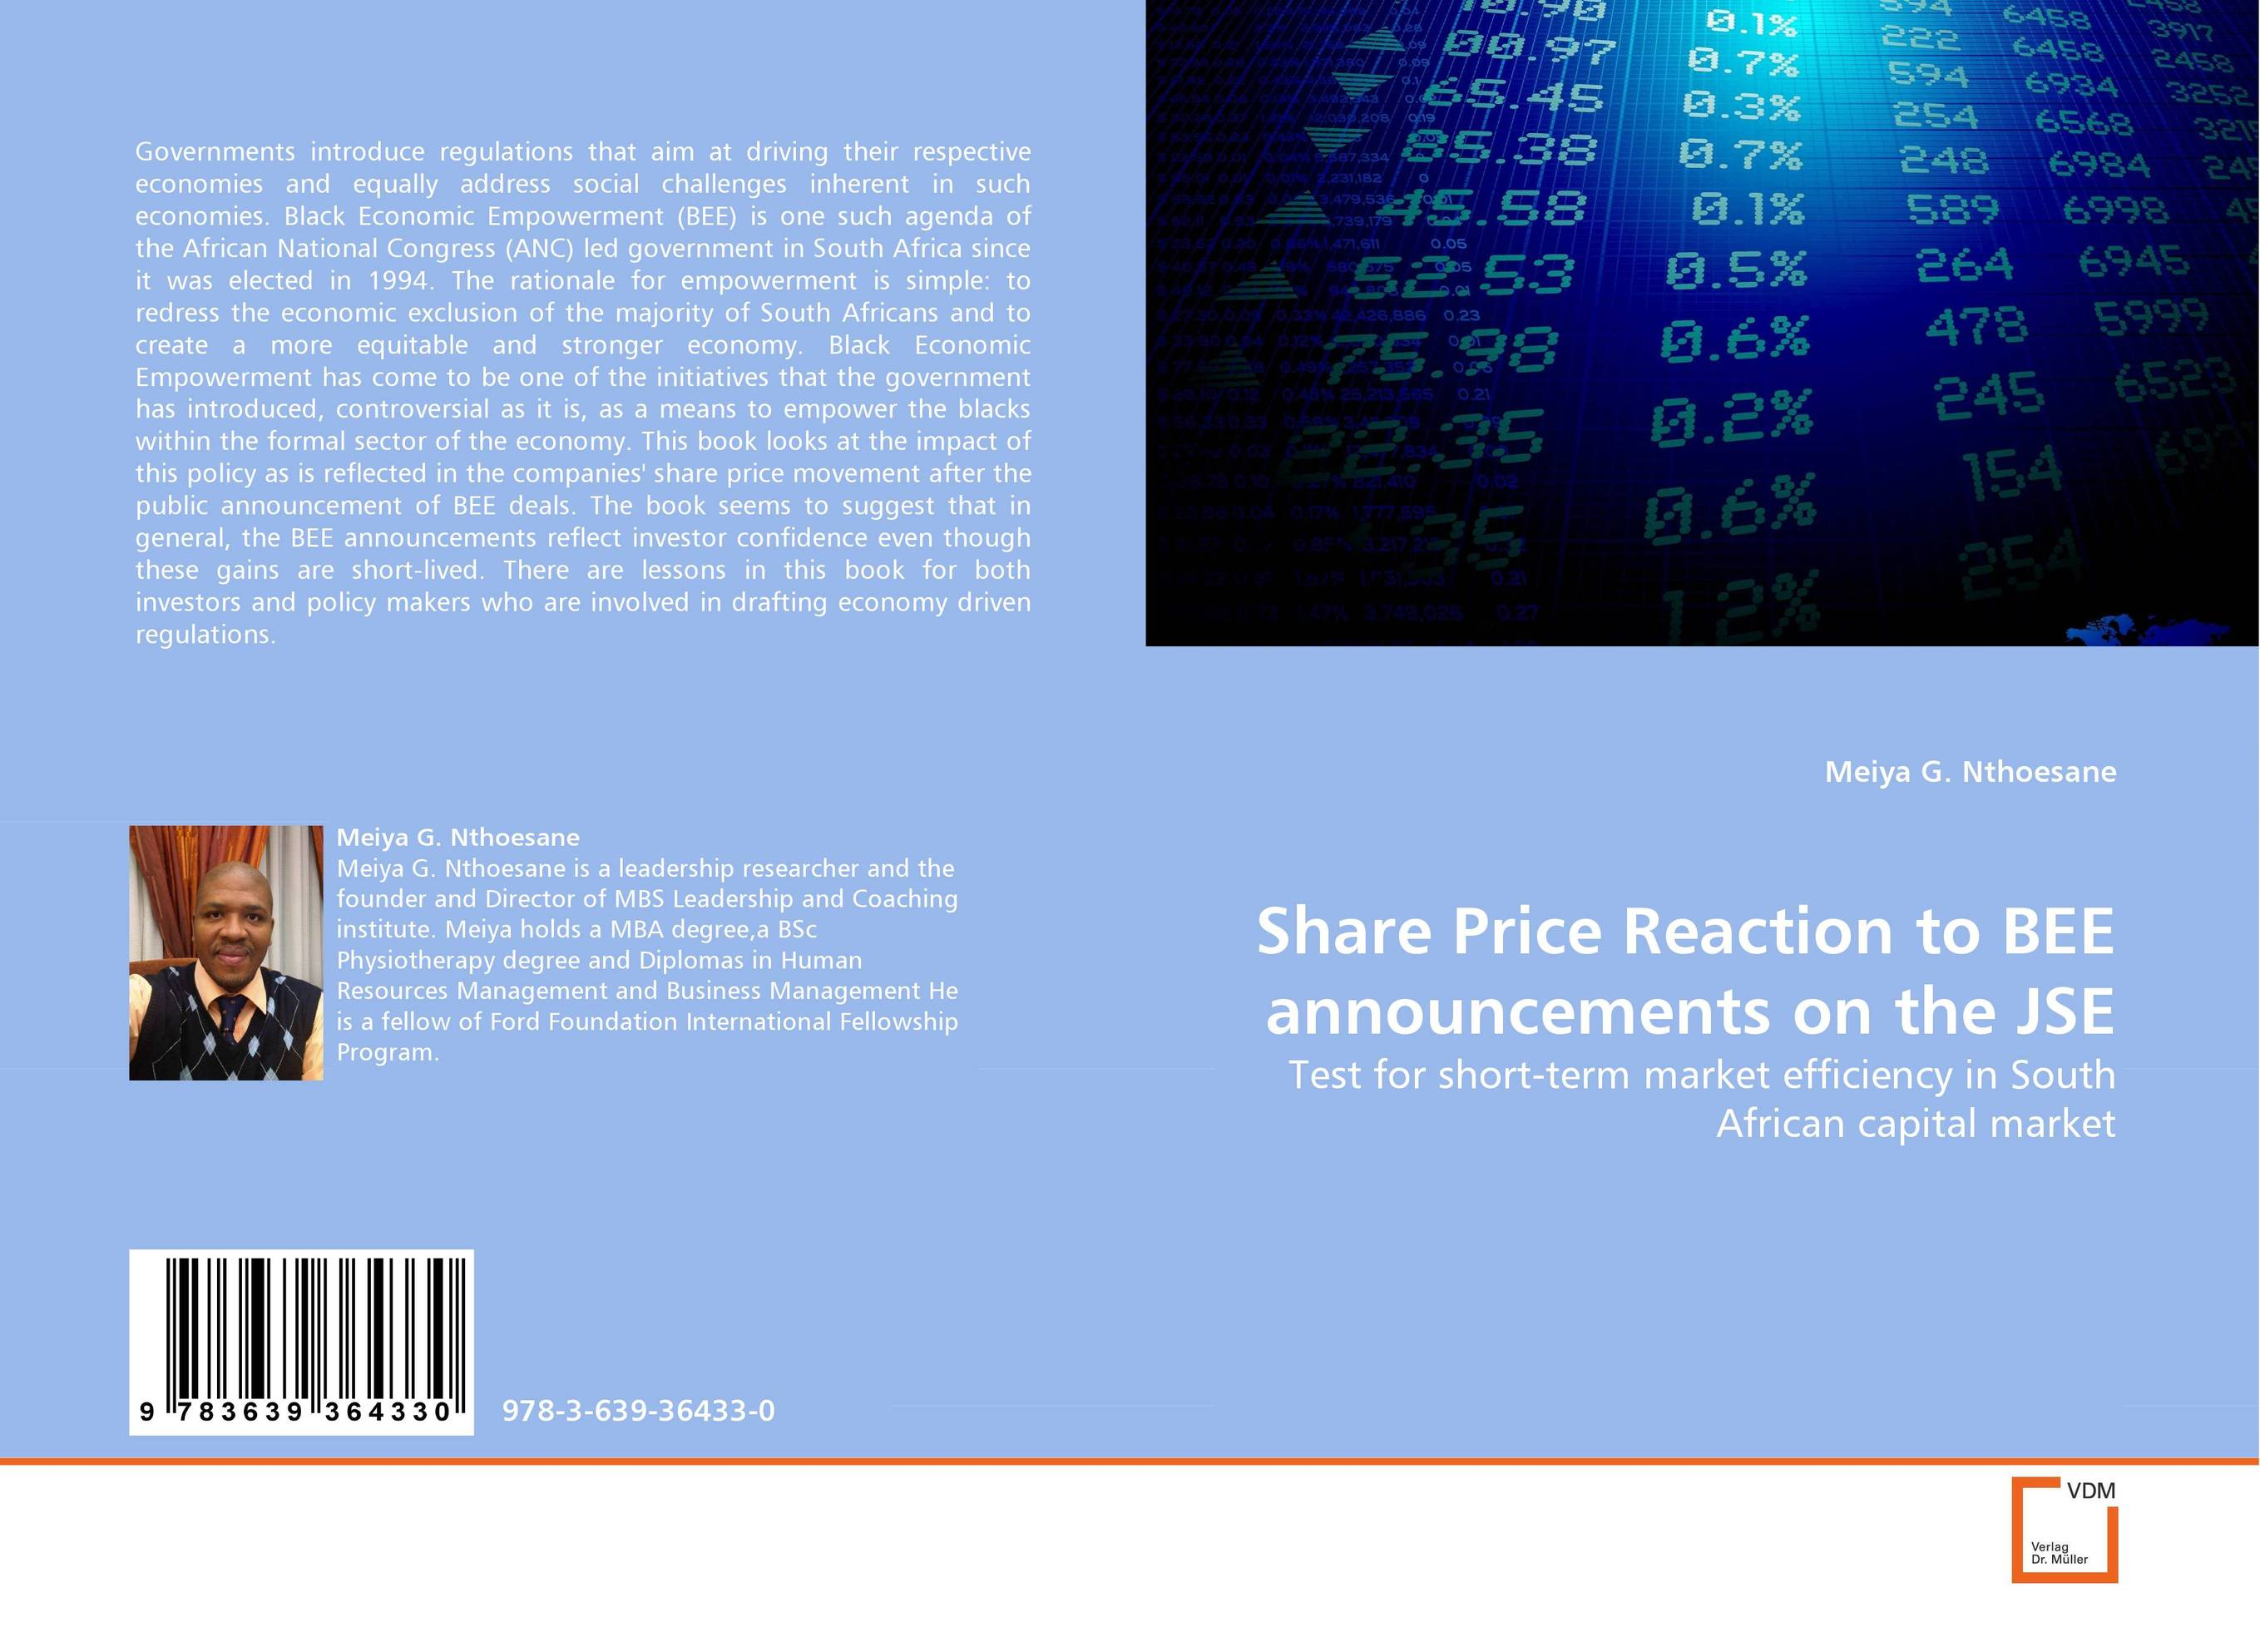 Share Price Reaction to BEE announcements on the JSE